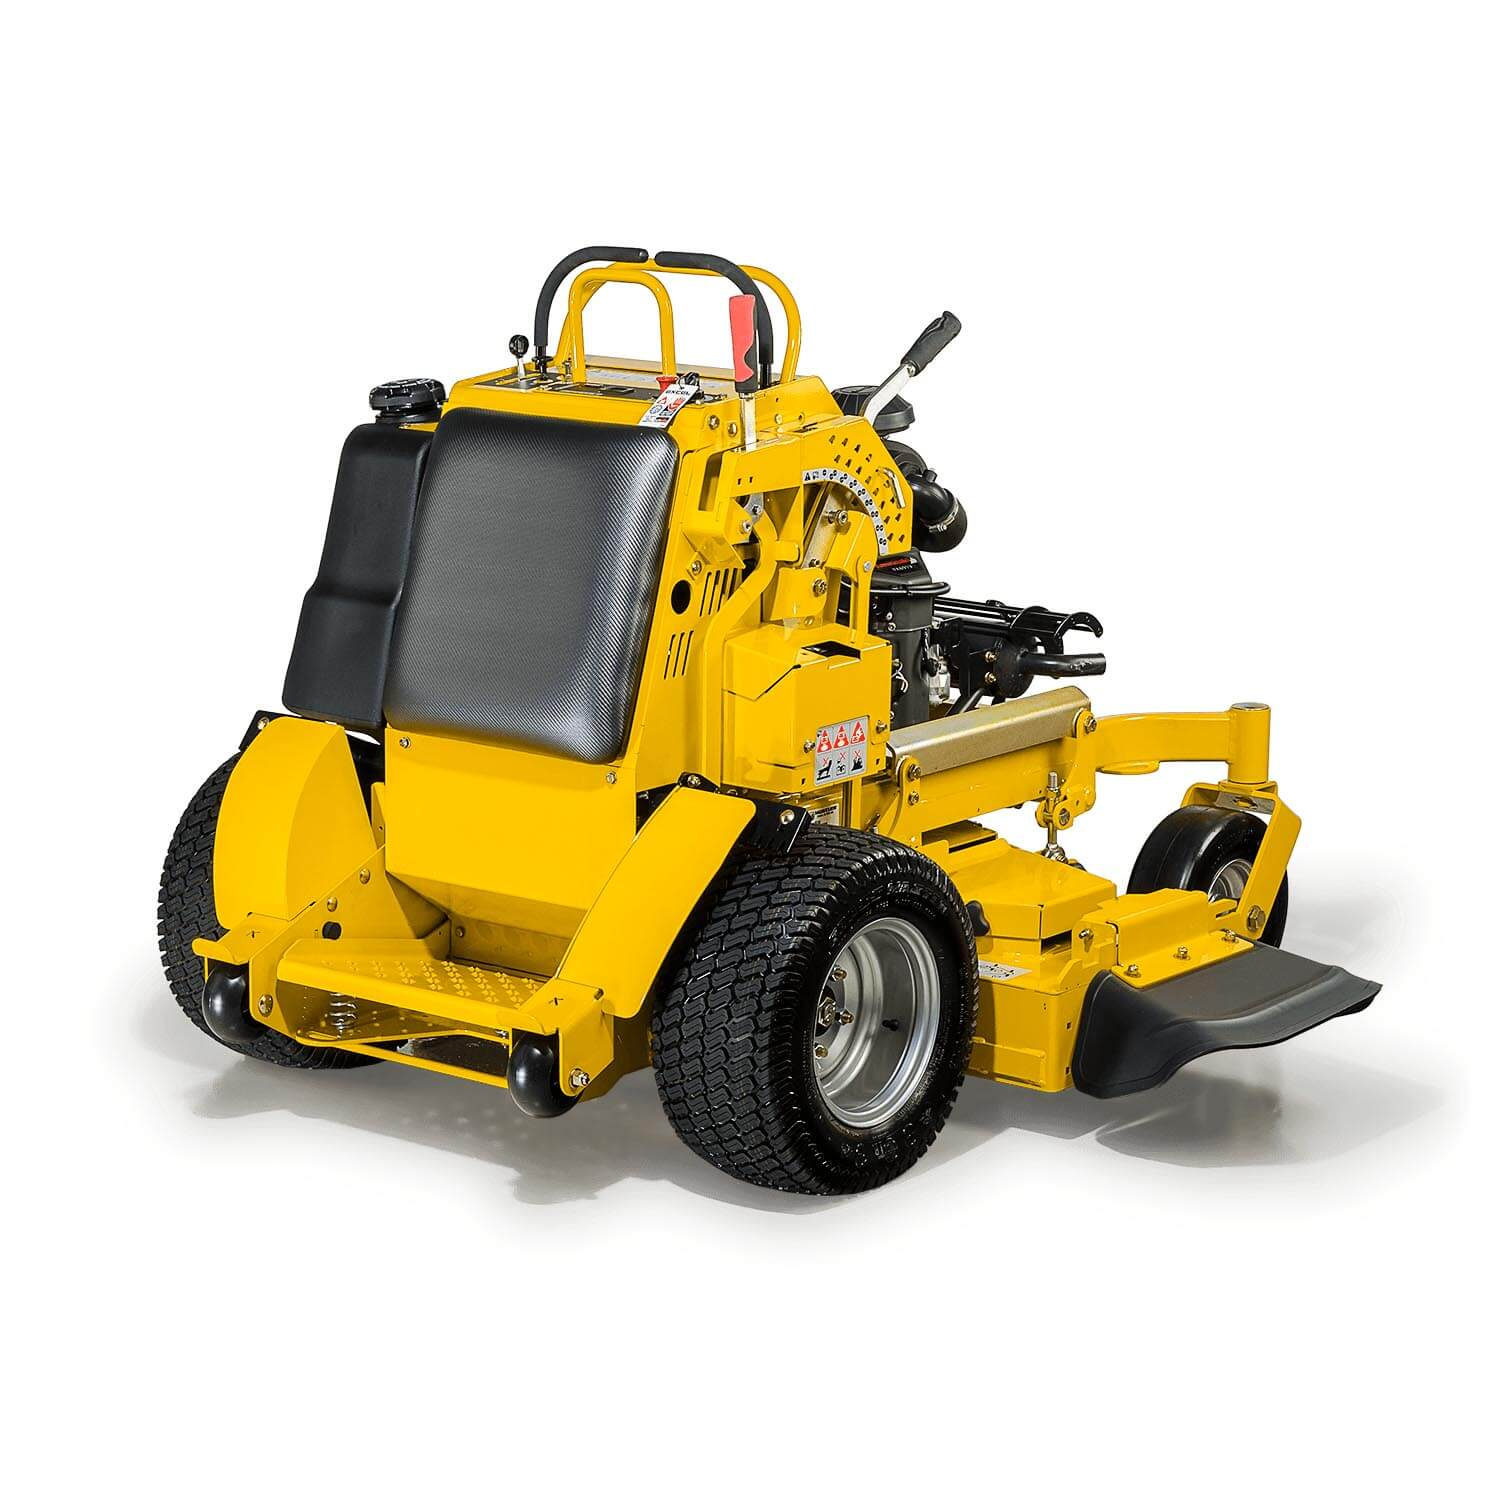 Image of the rear three quarters of a yellow stand-on mower showing the discharge chute of the deck